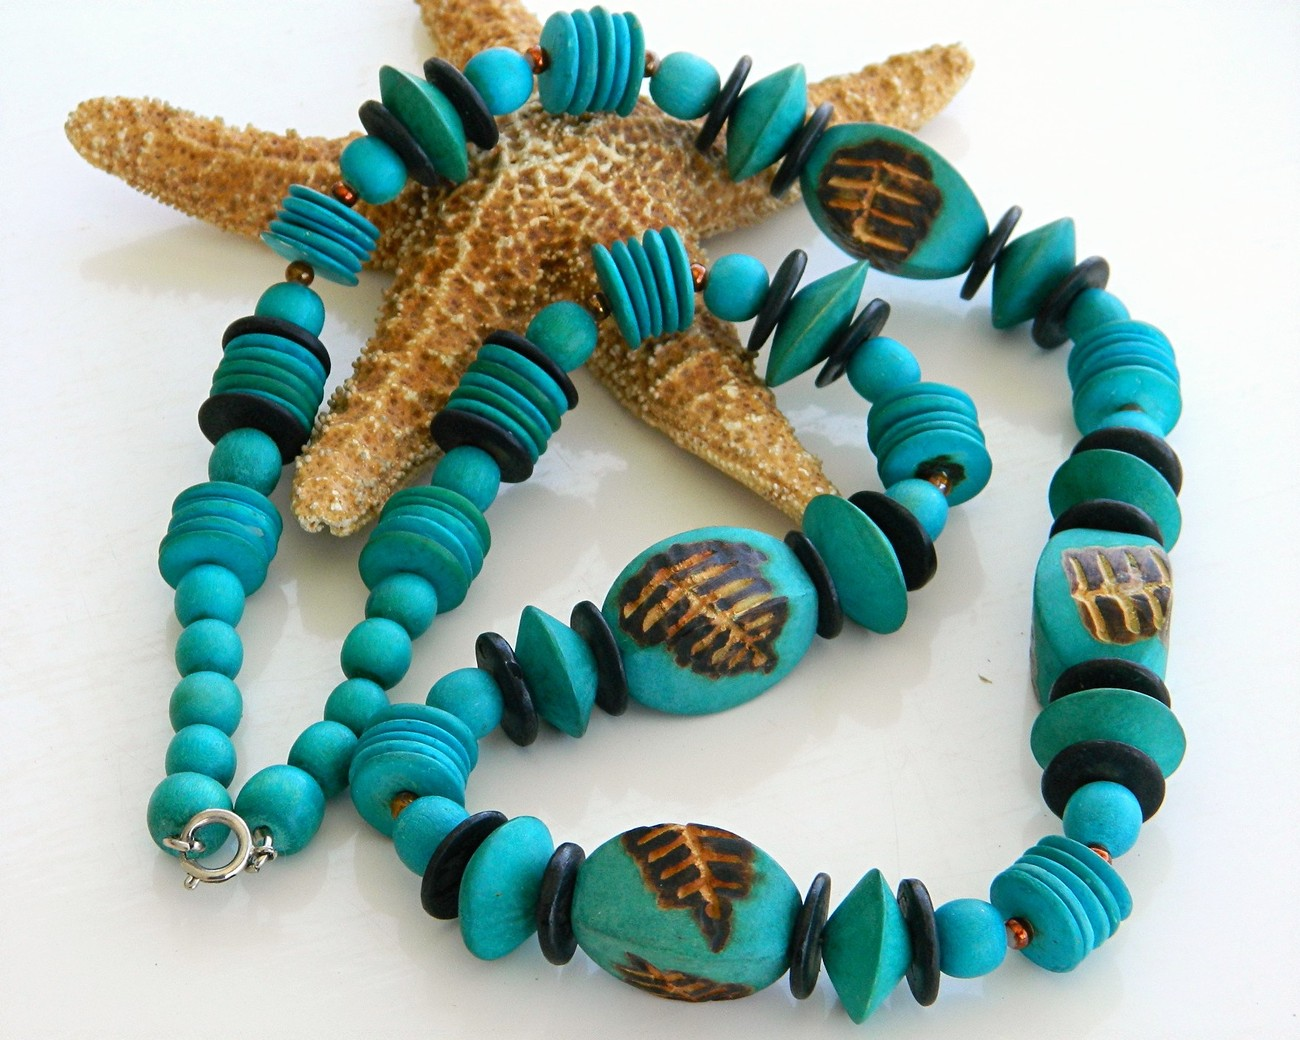 Vintage handmade wooden necklace chunky turquoise beads wood